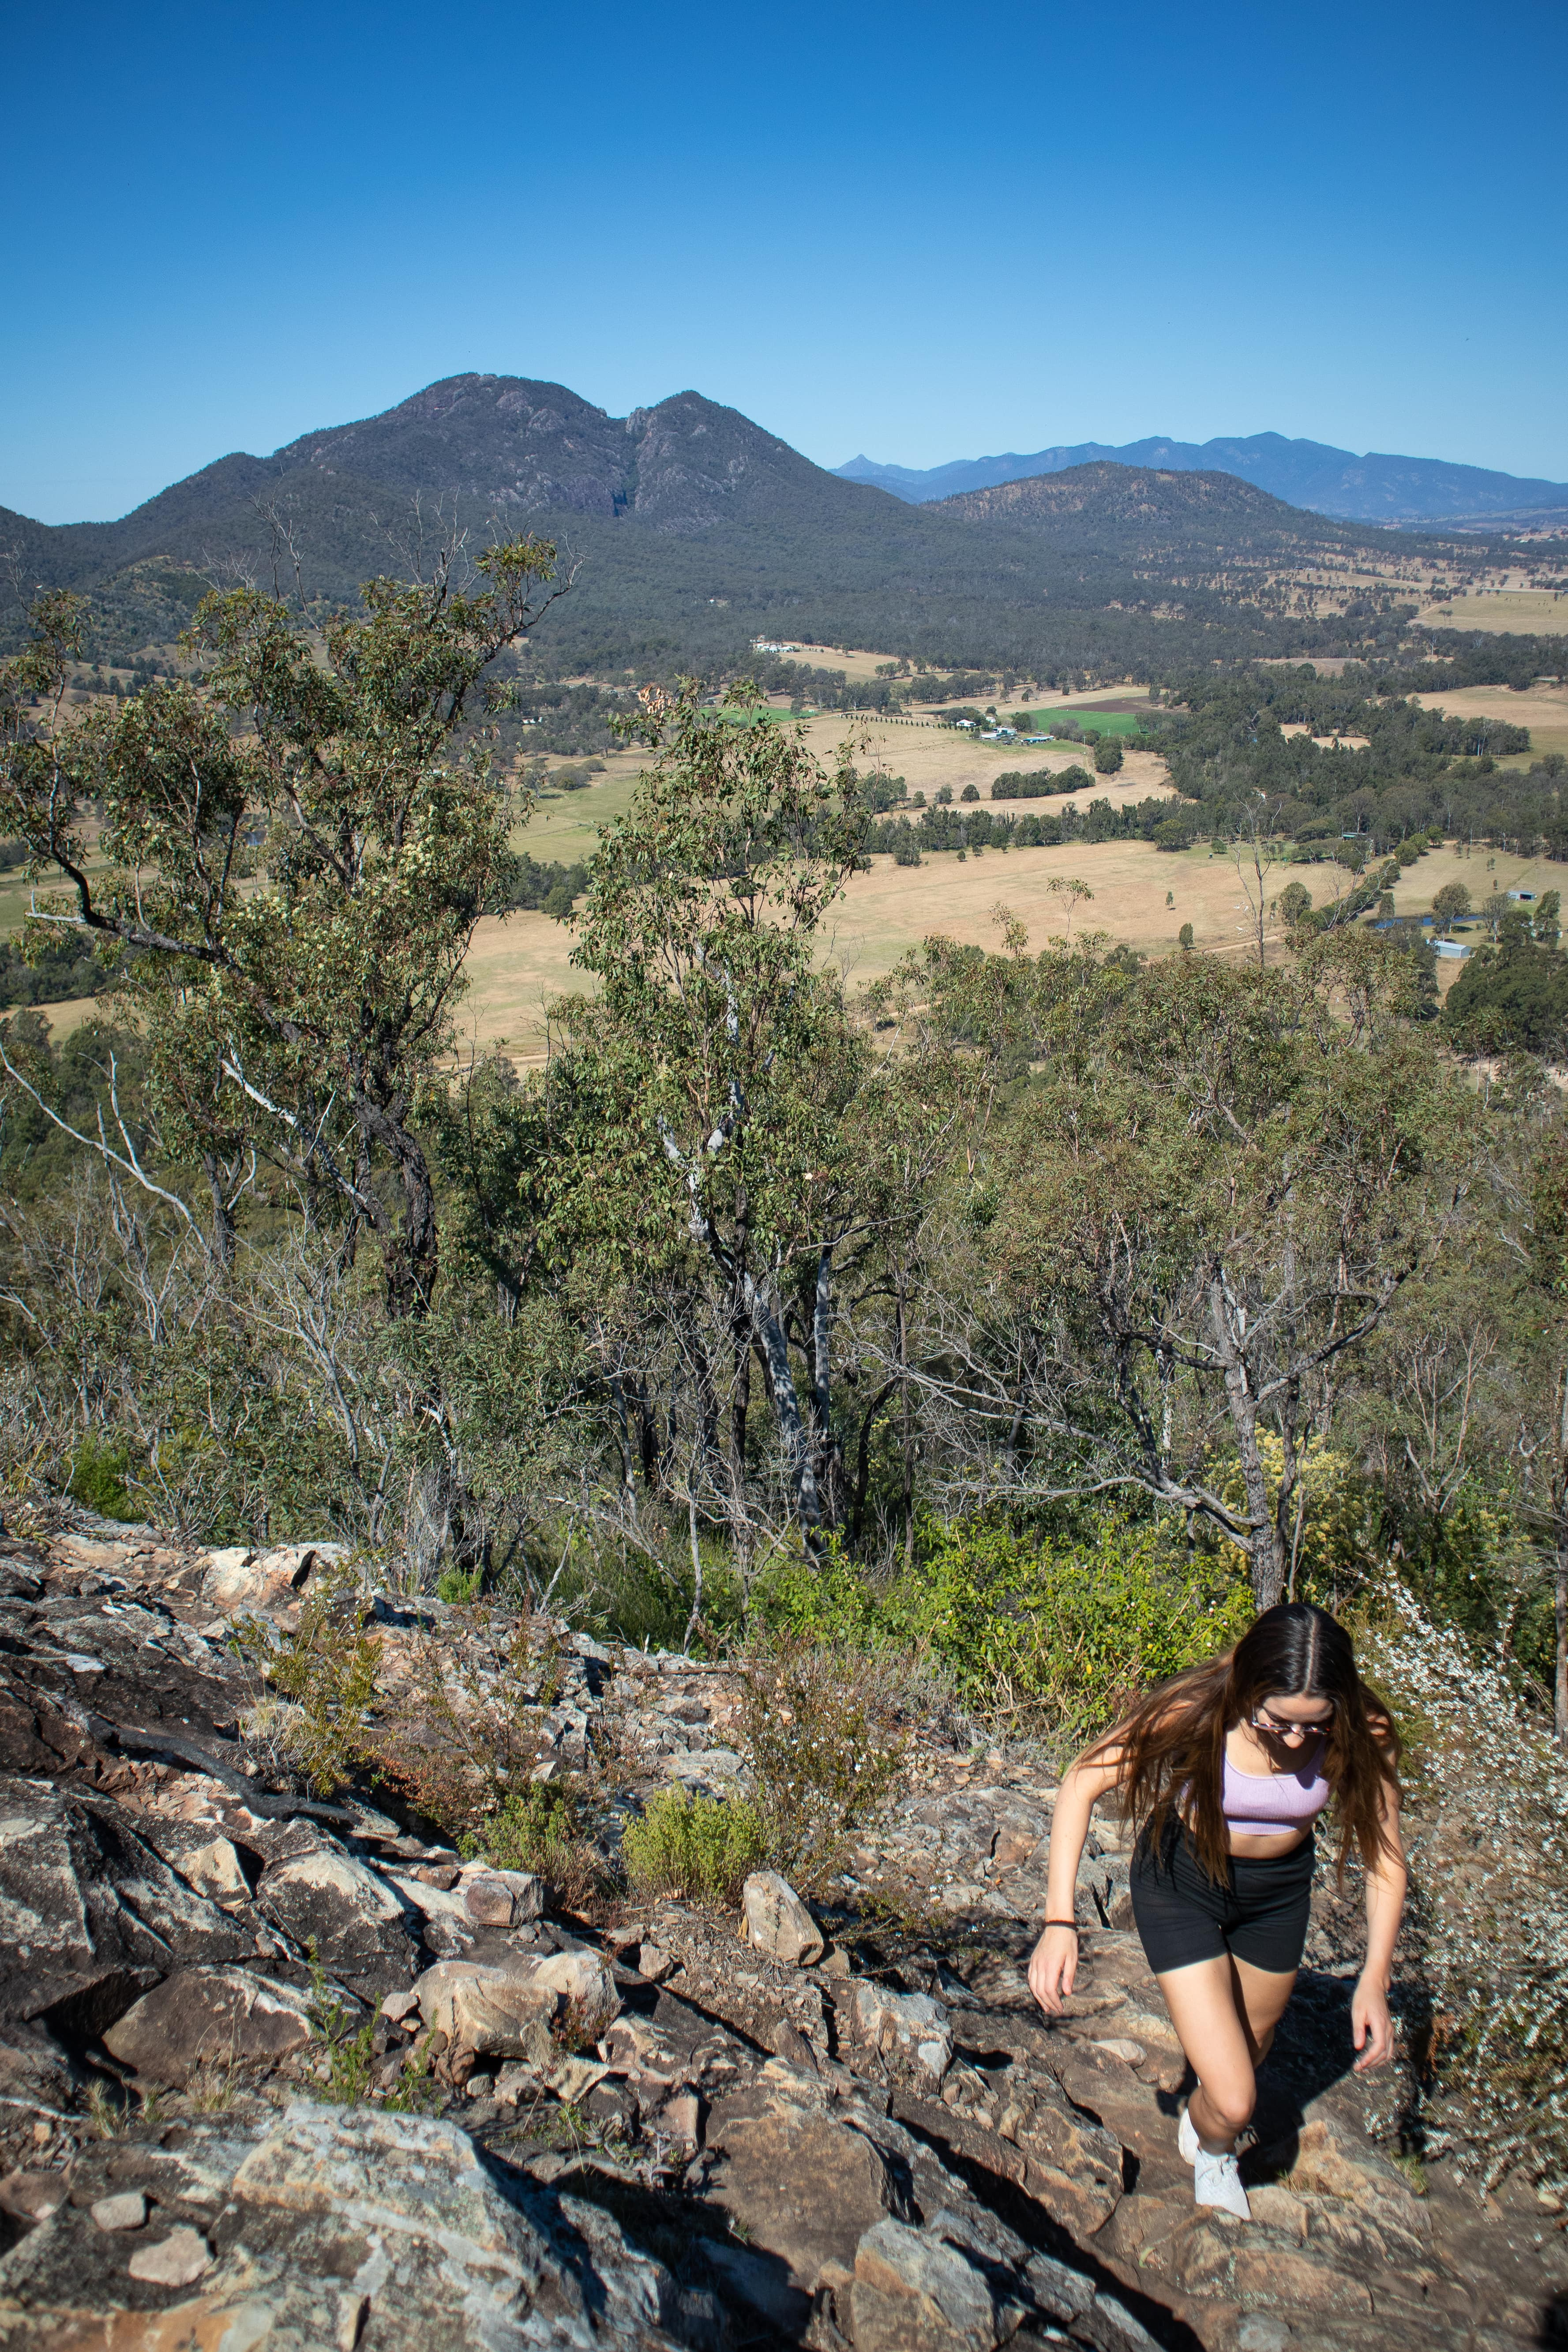 girl climbing up a steep rocky incline with mountainous views of the scenic rim behind her